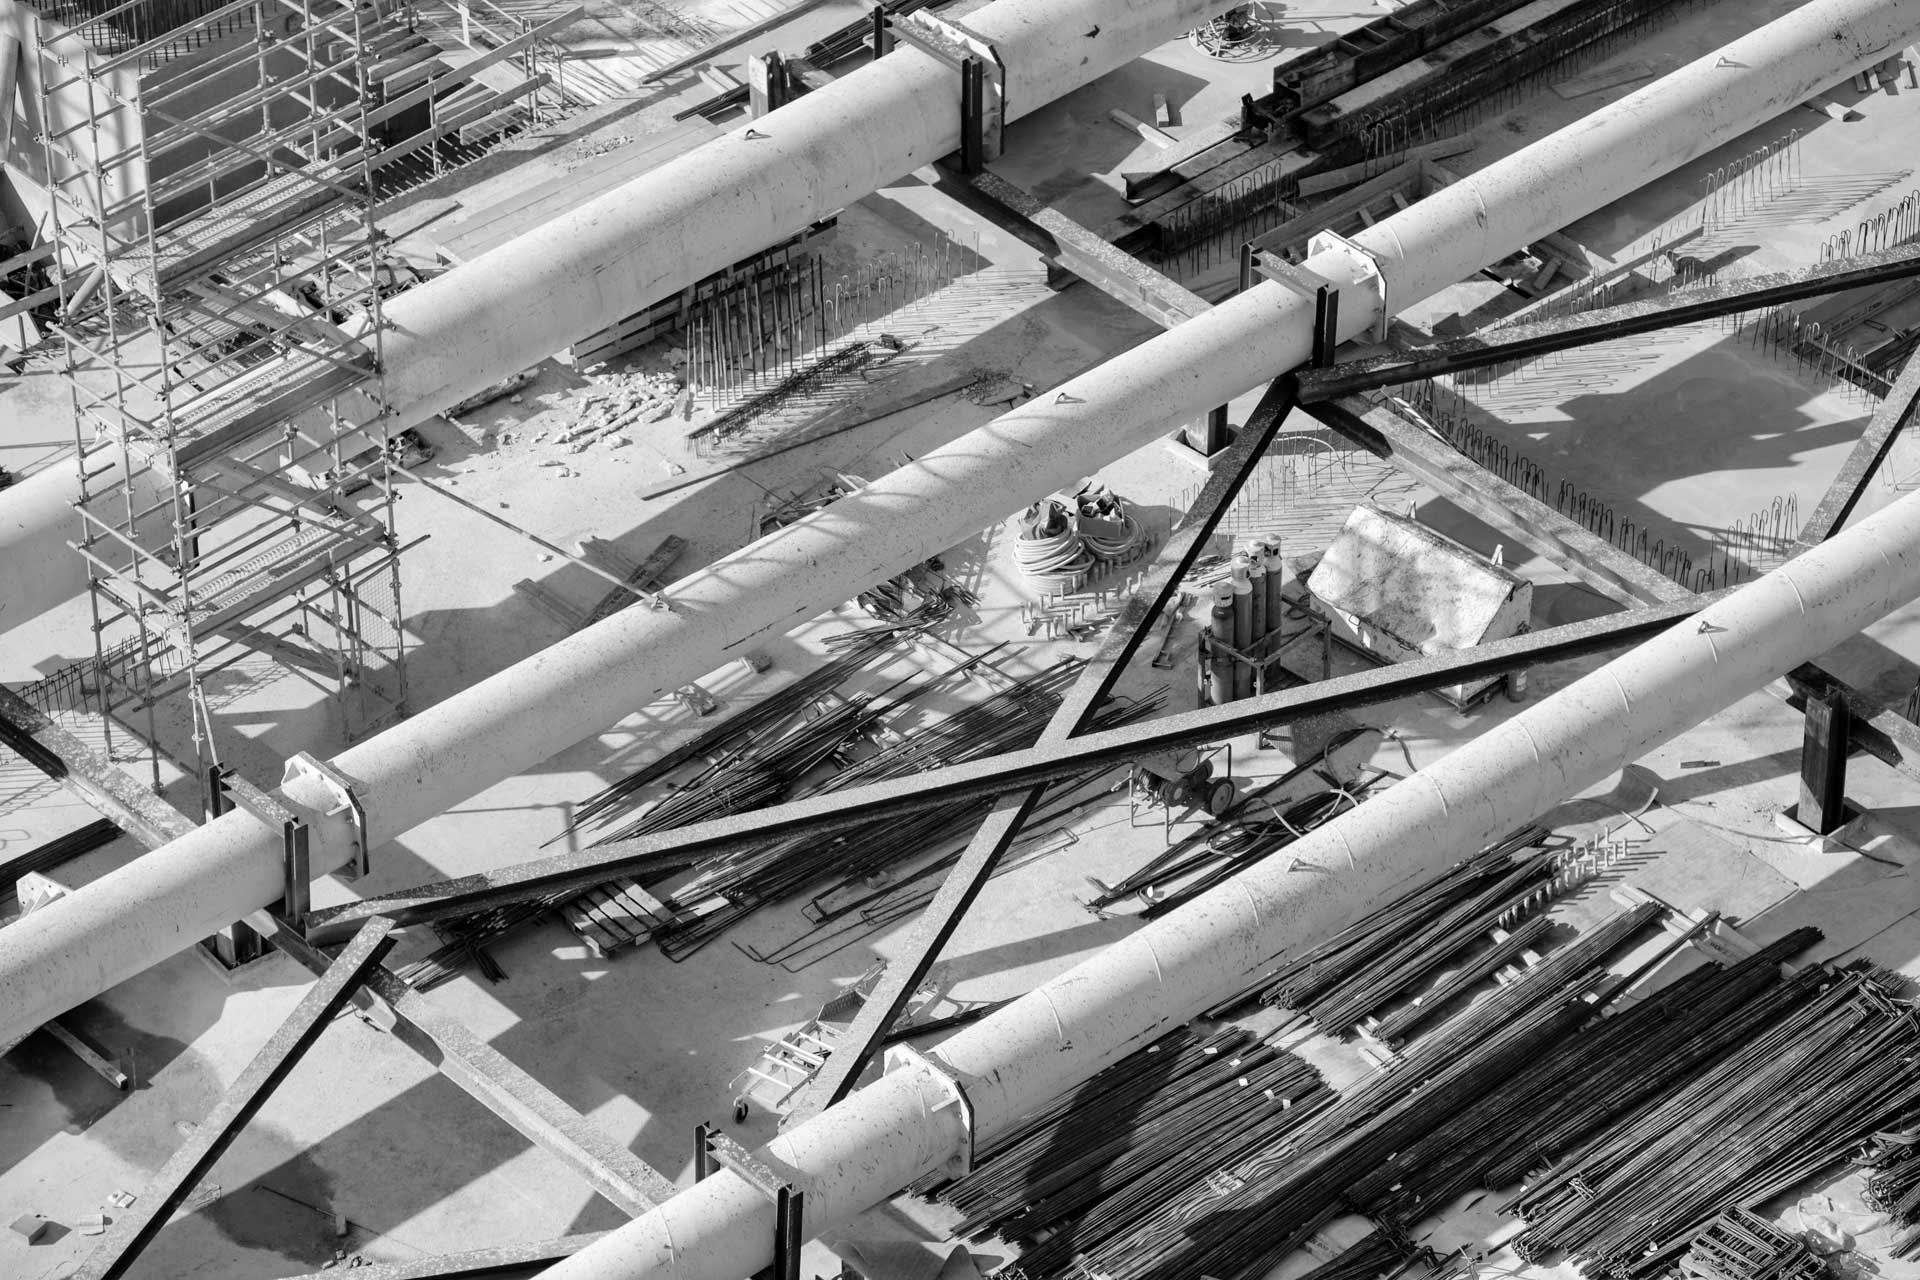 overhead view of pipes under construction